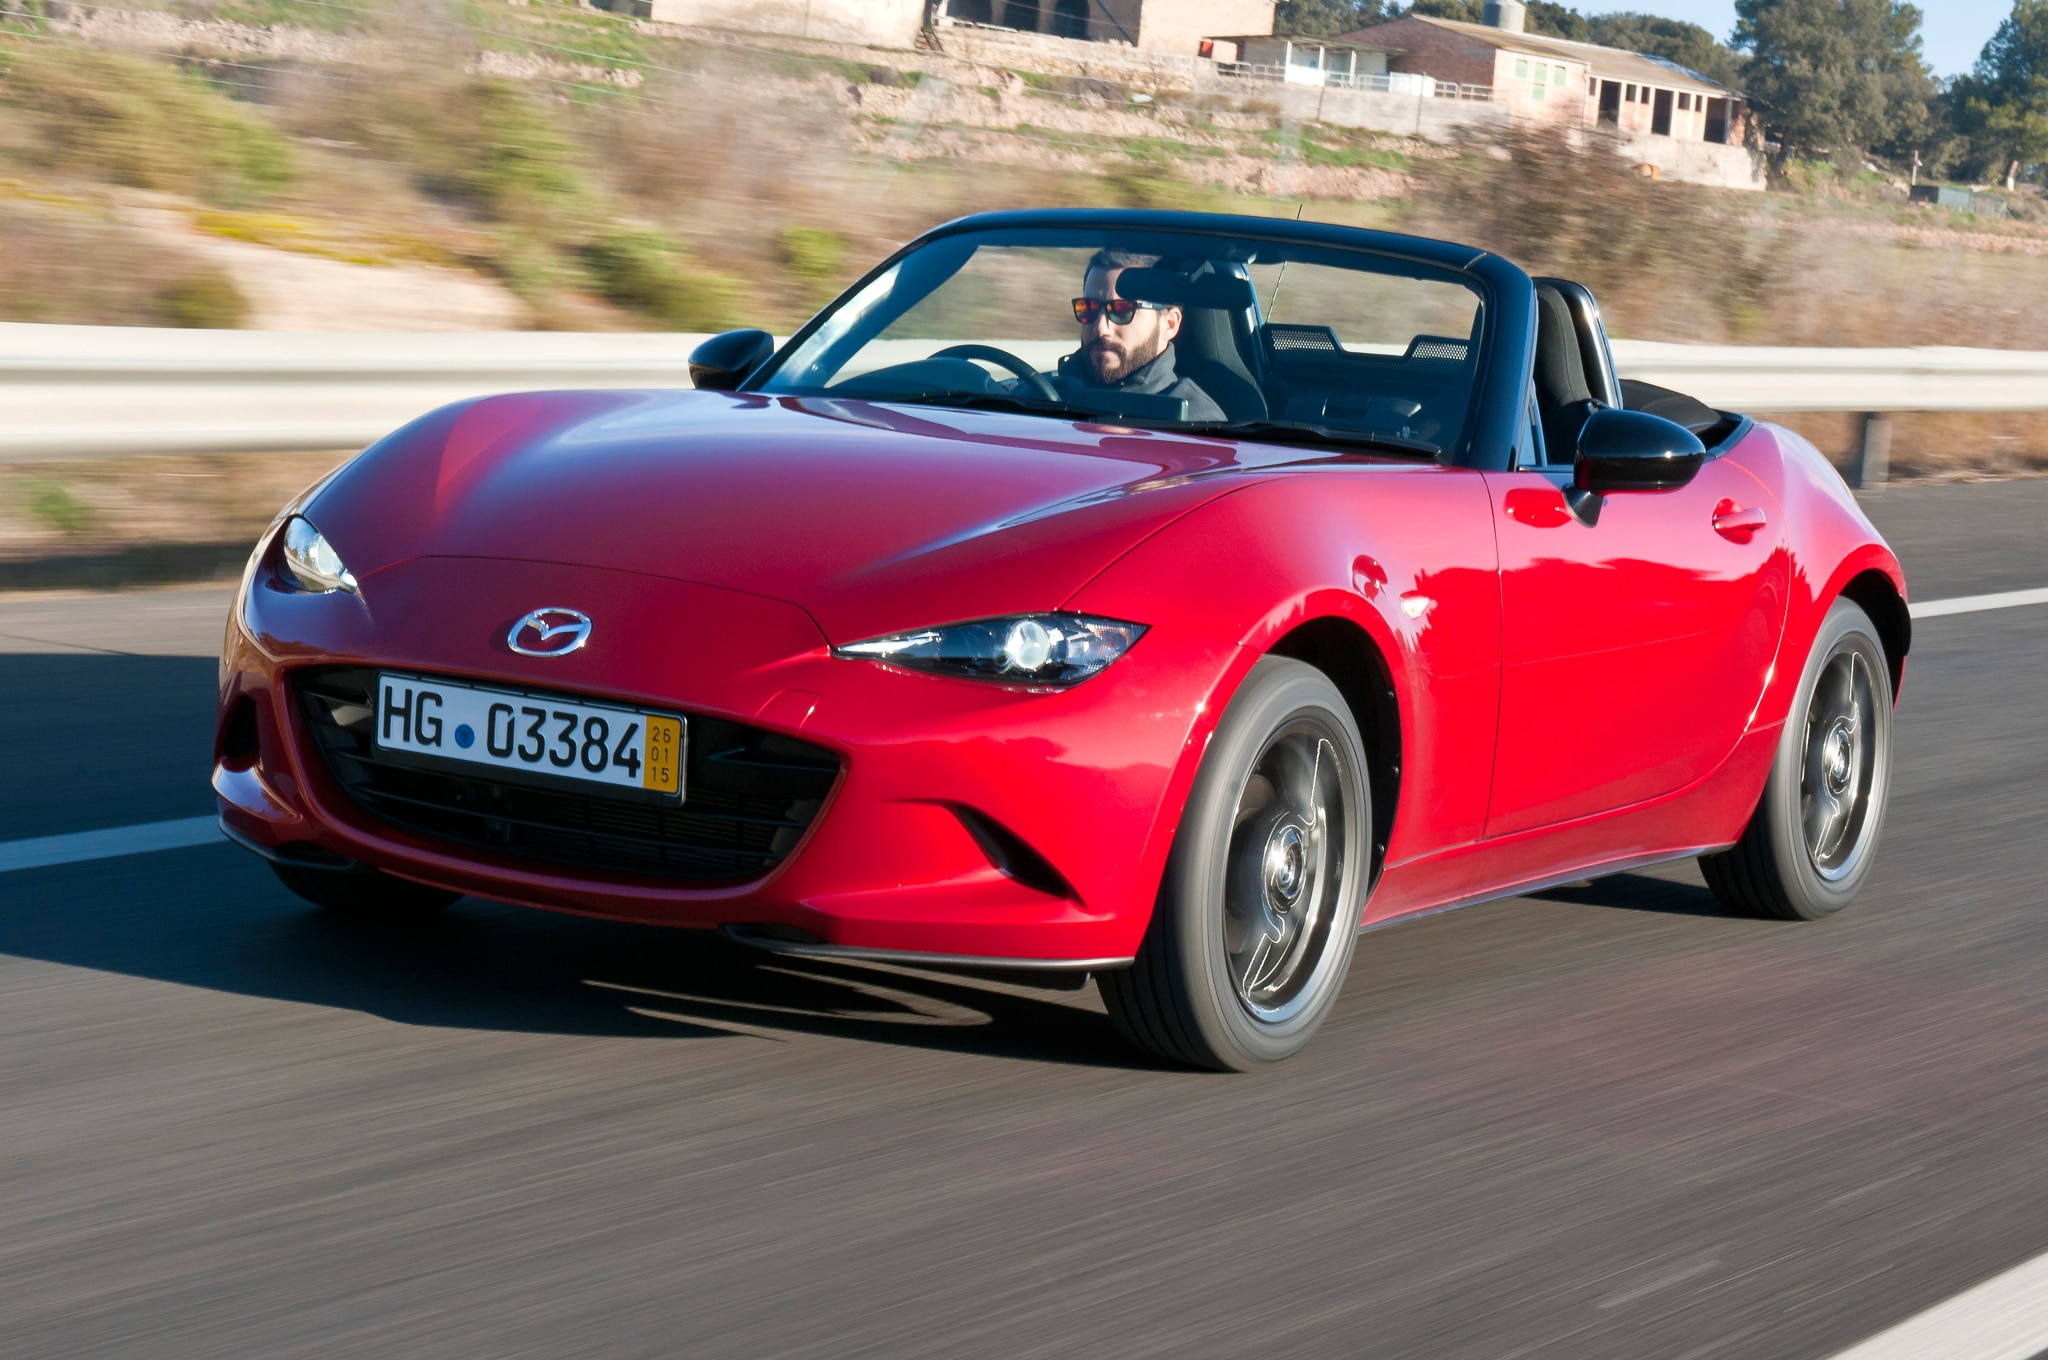 2016 Mazda MX-5 Miata 1.5L Review